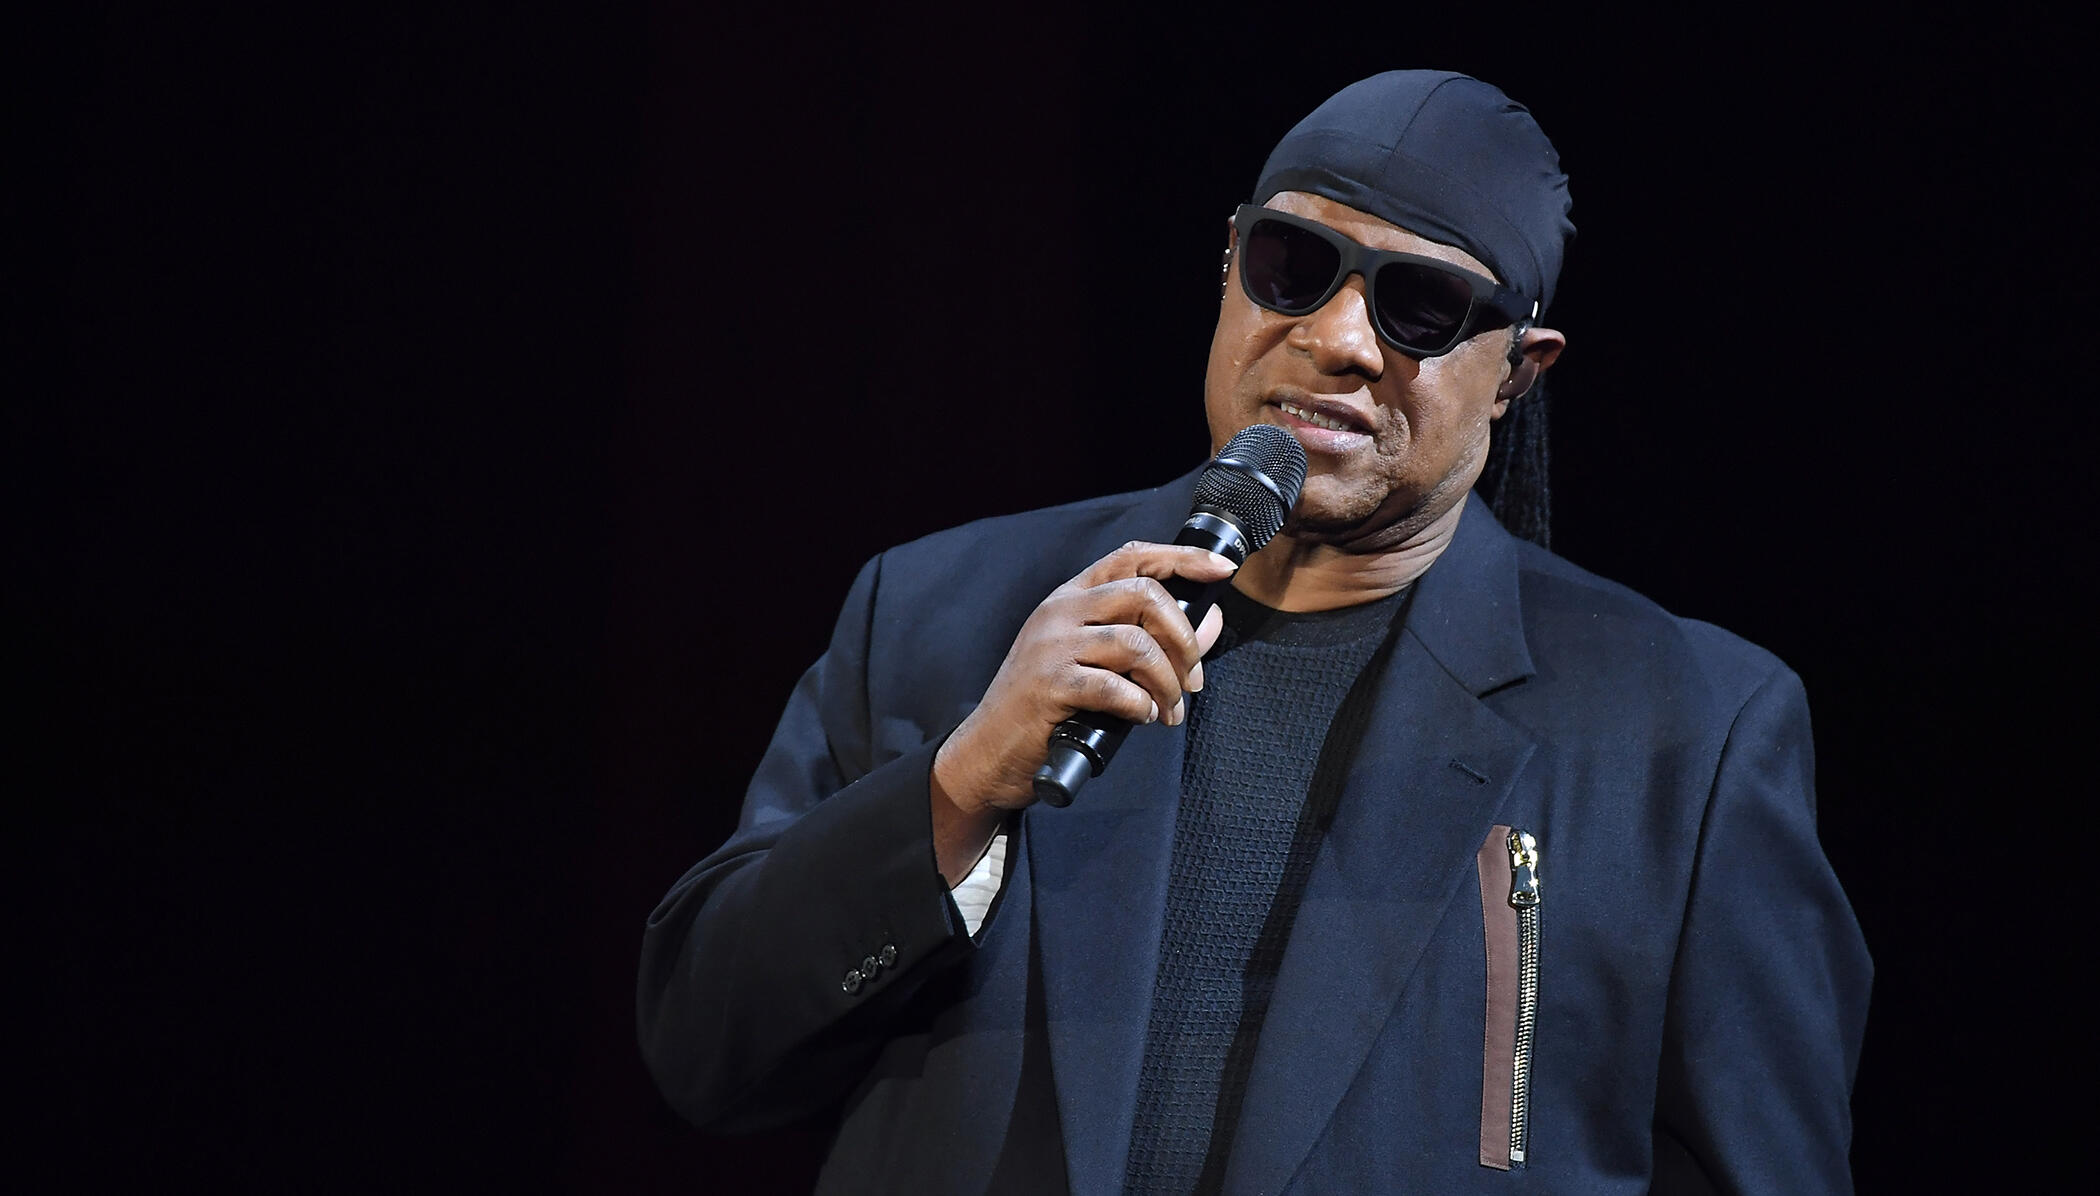 Stevie Wonder Hopes For Civil Rights Advancement Following Recent Protests